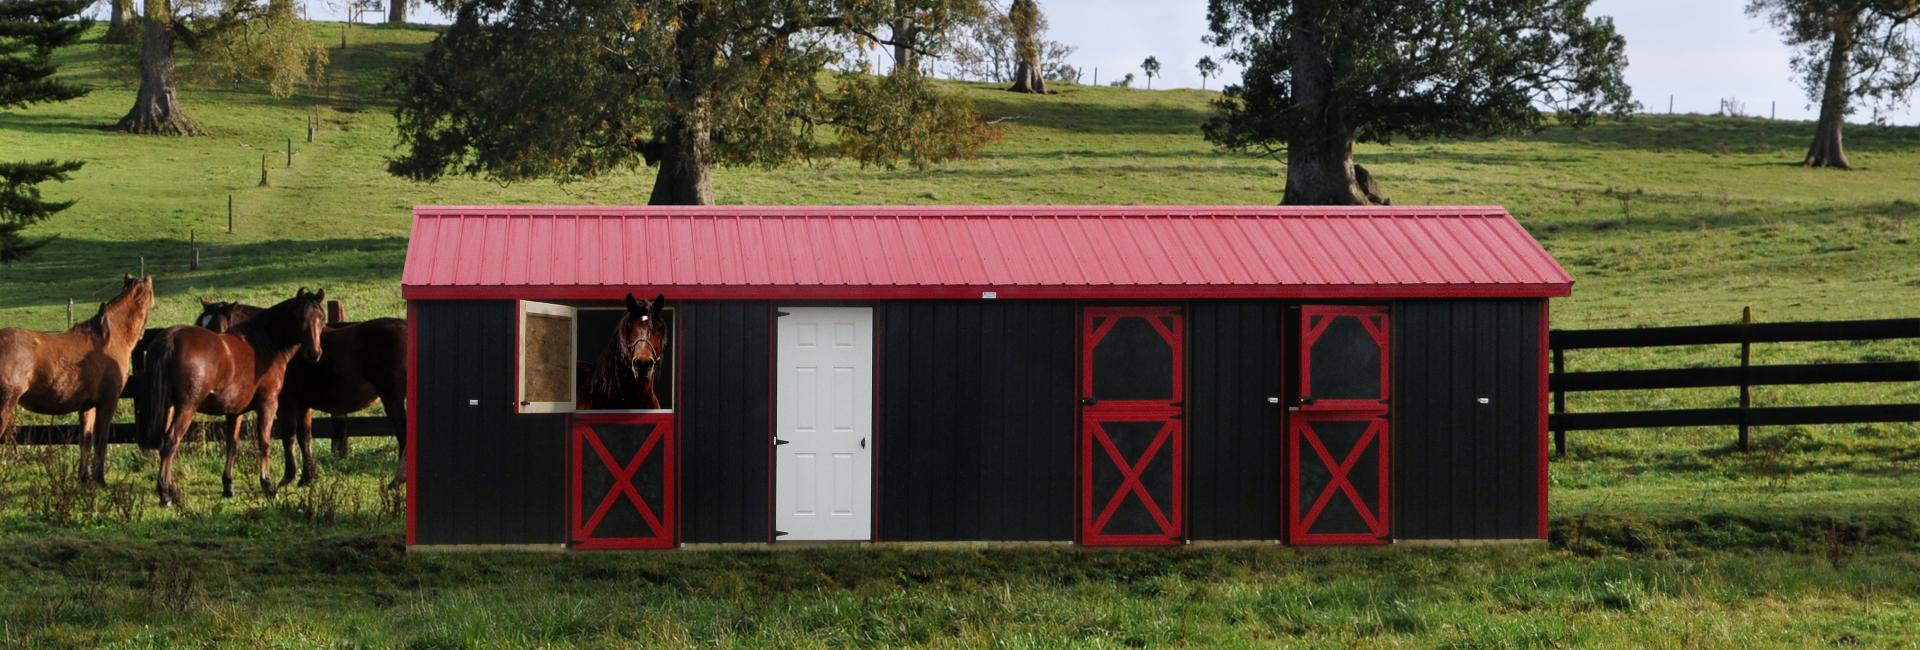 Deluxe 3 stall with tack room